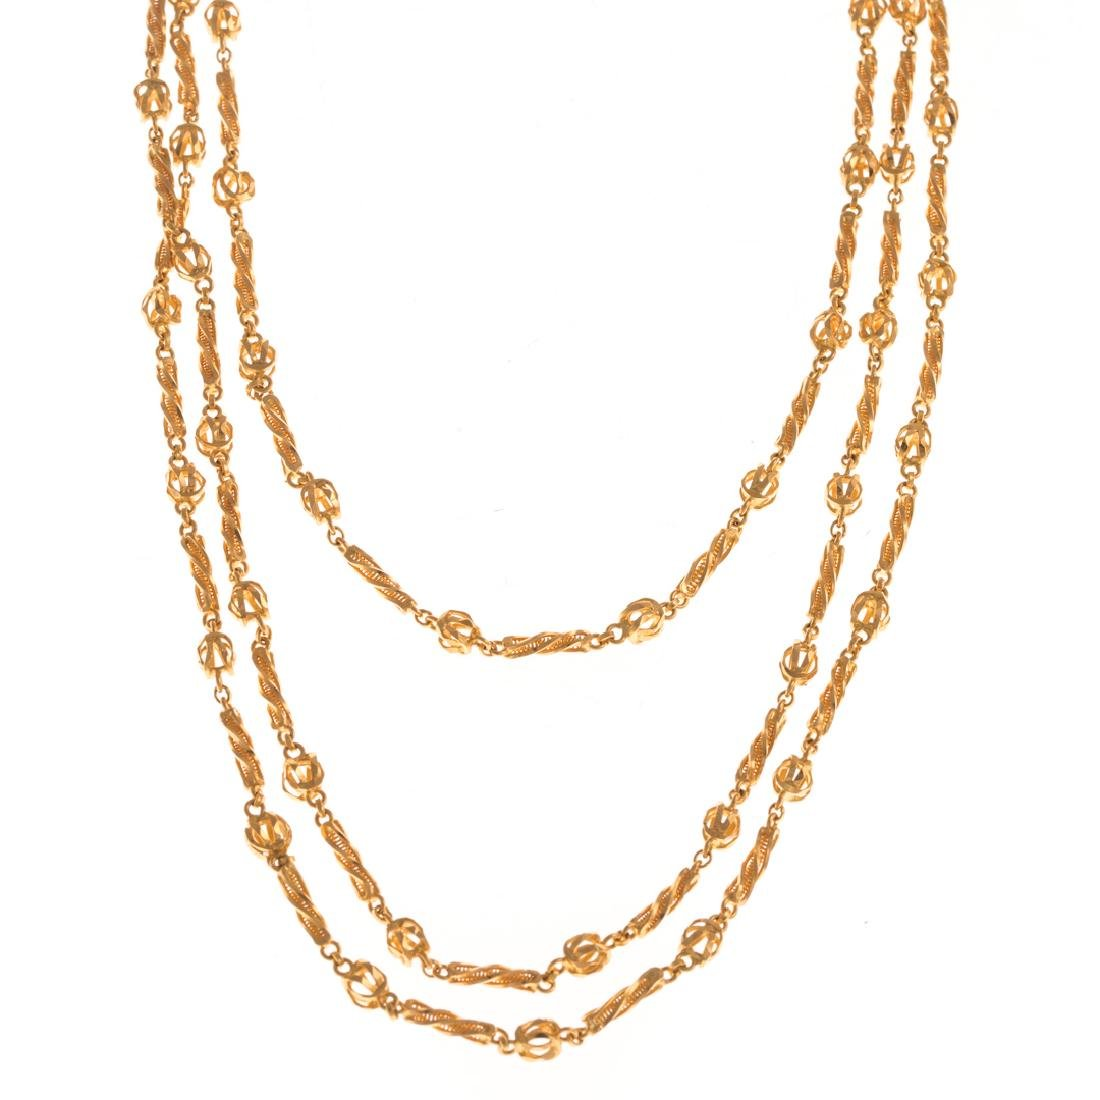 A Lady's Long 22K Indian Link Necklace